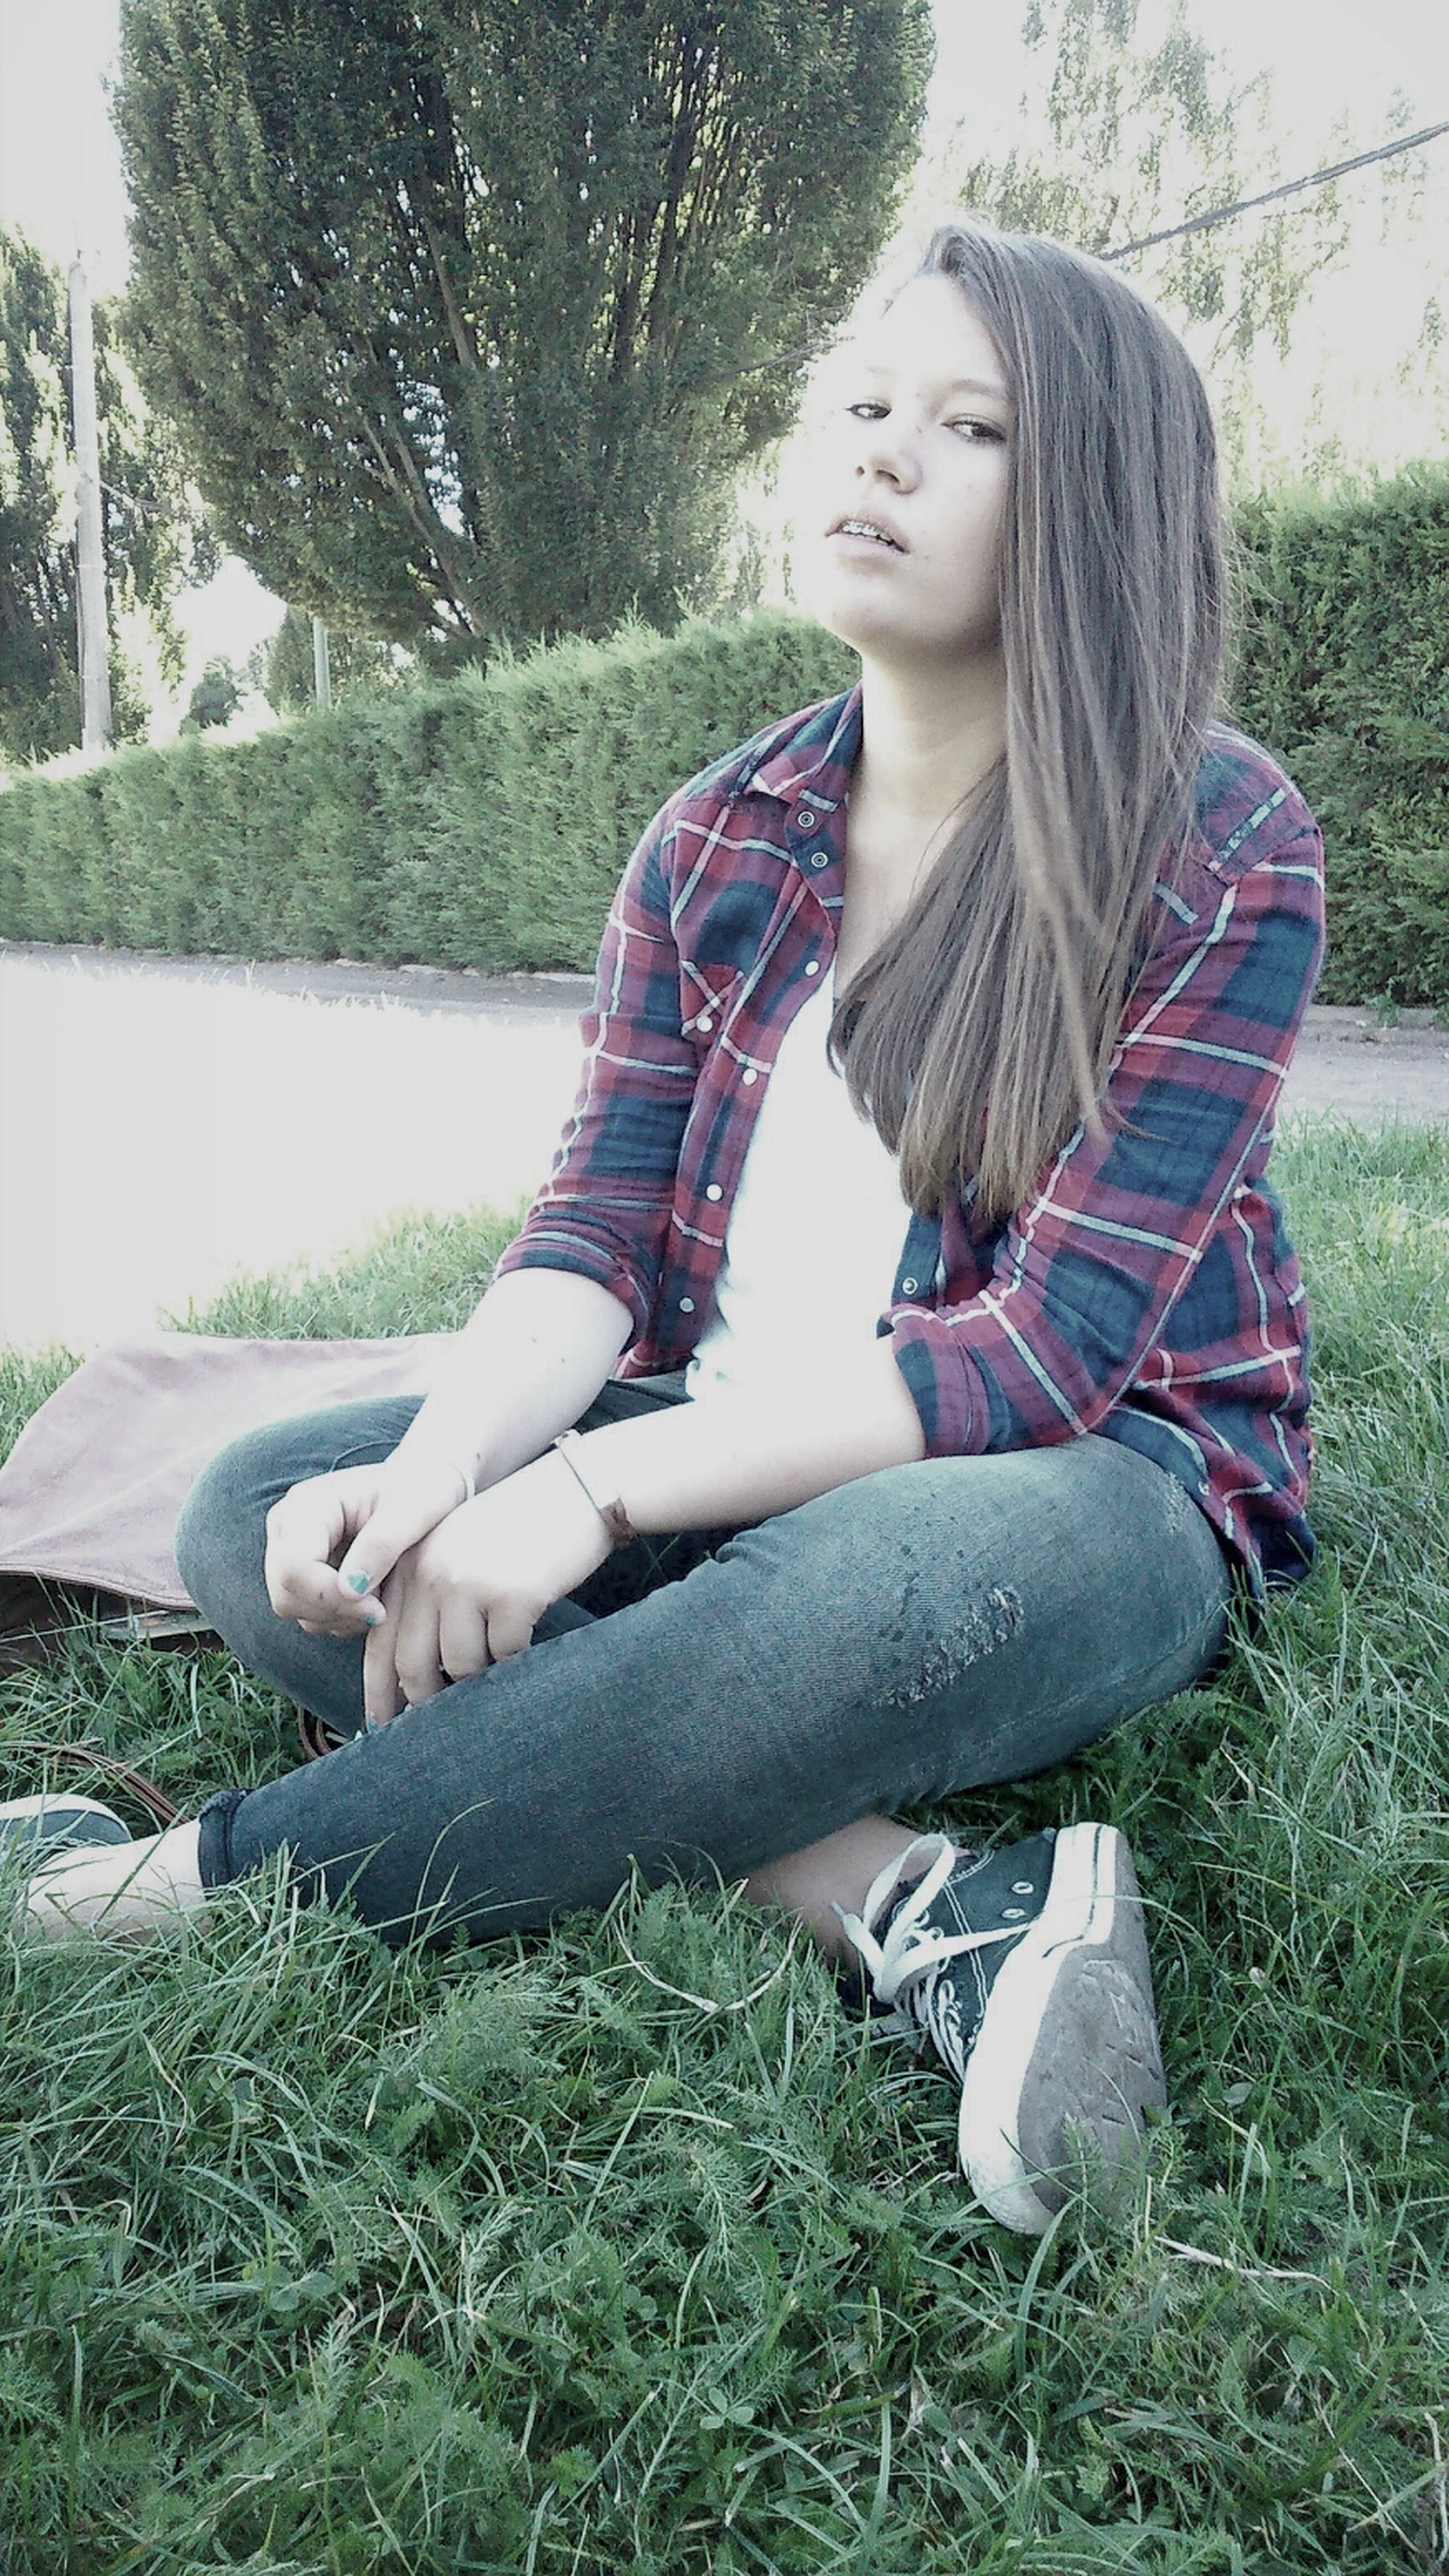 young adult, young women, person, lifestyles, grass, casual clothing, leisure activity, long hair, full length, sitting, portrait, looking at camera, relaxation, front view, standing, park - man made space, tree